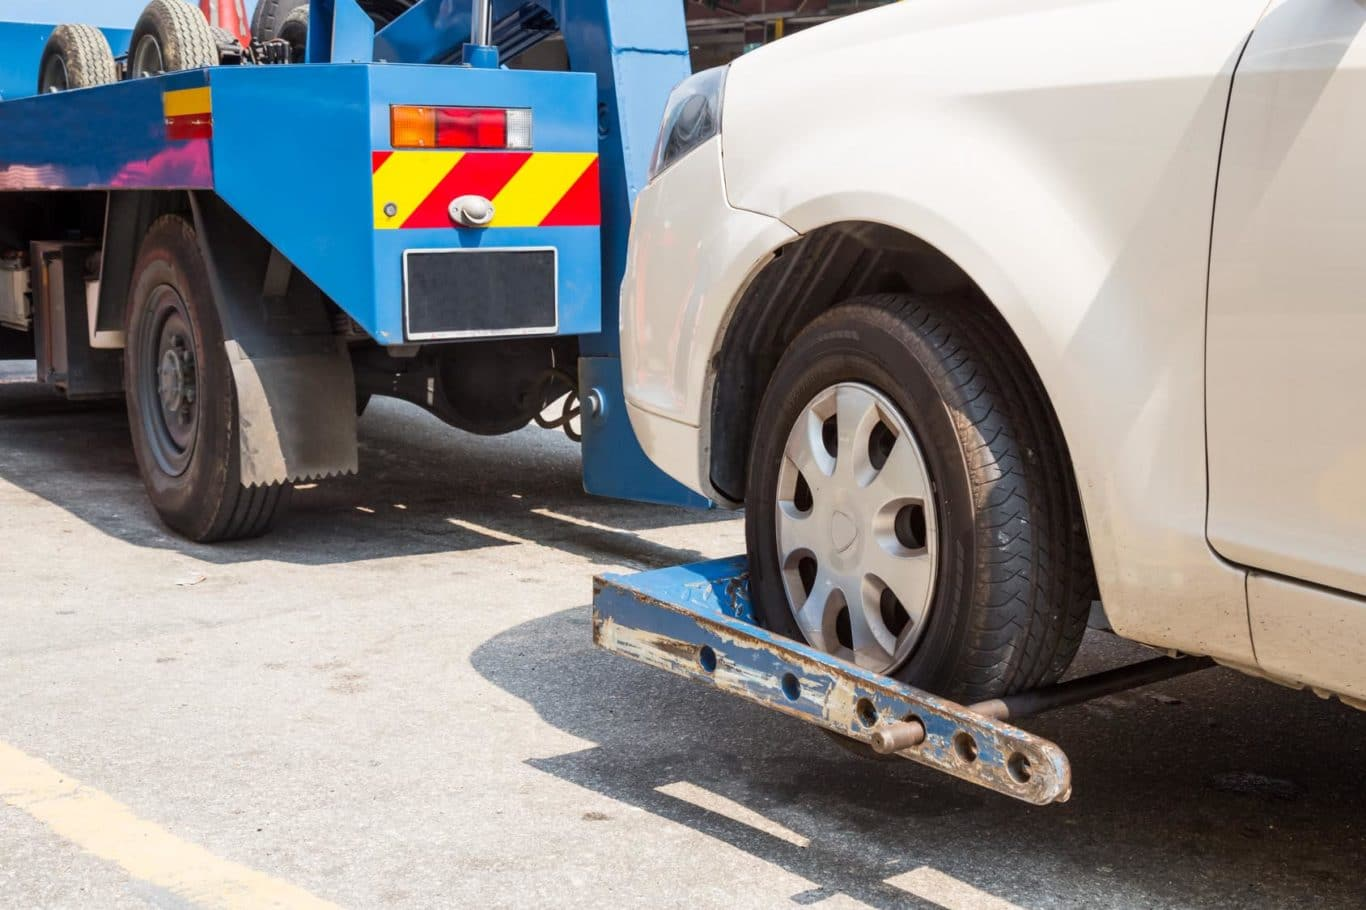 Naul expert Car Towing services